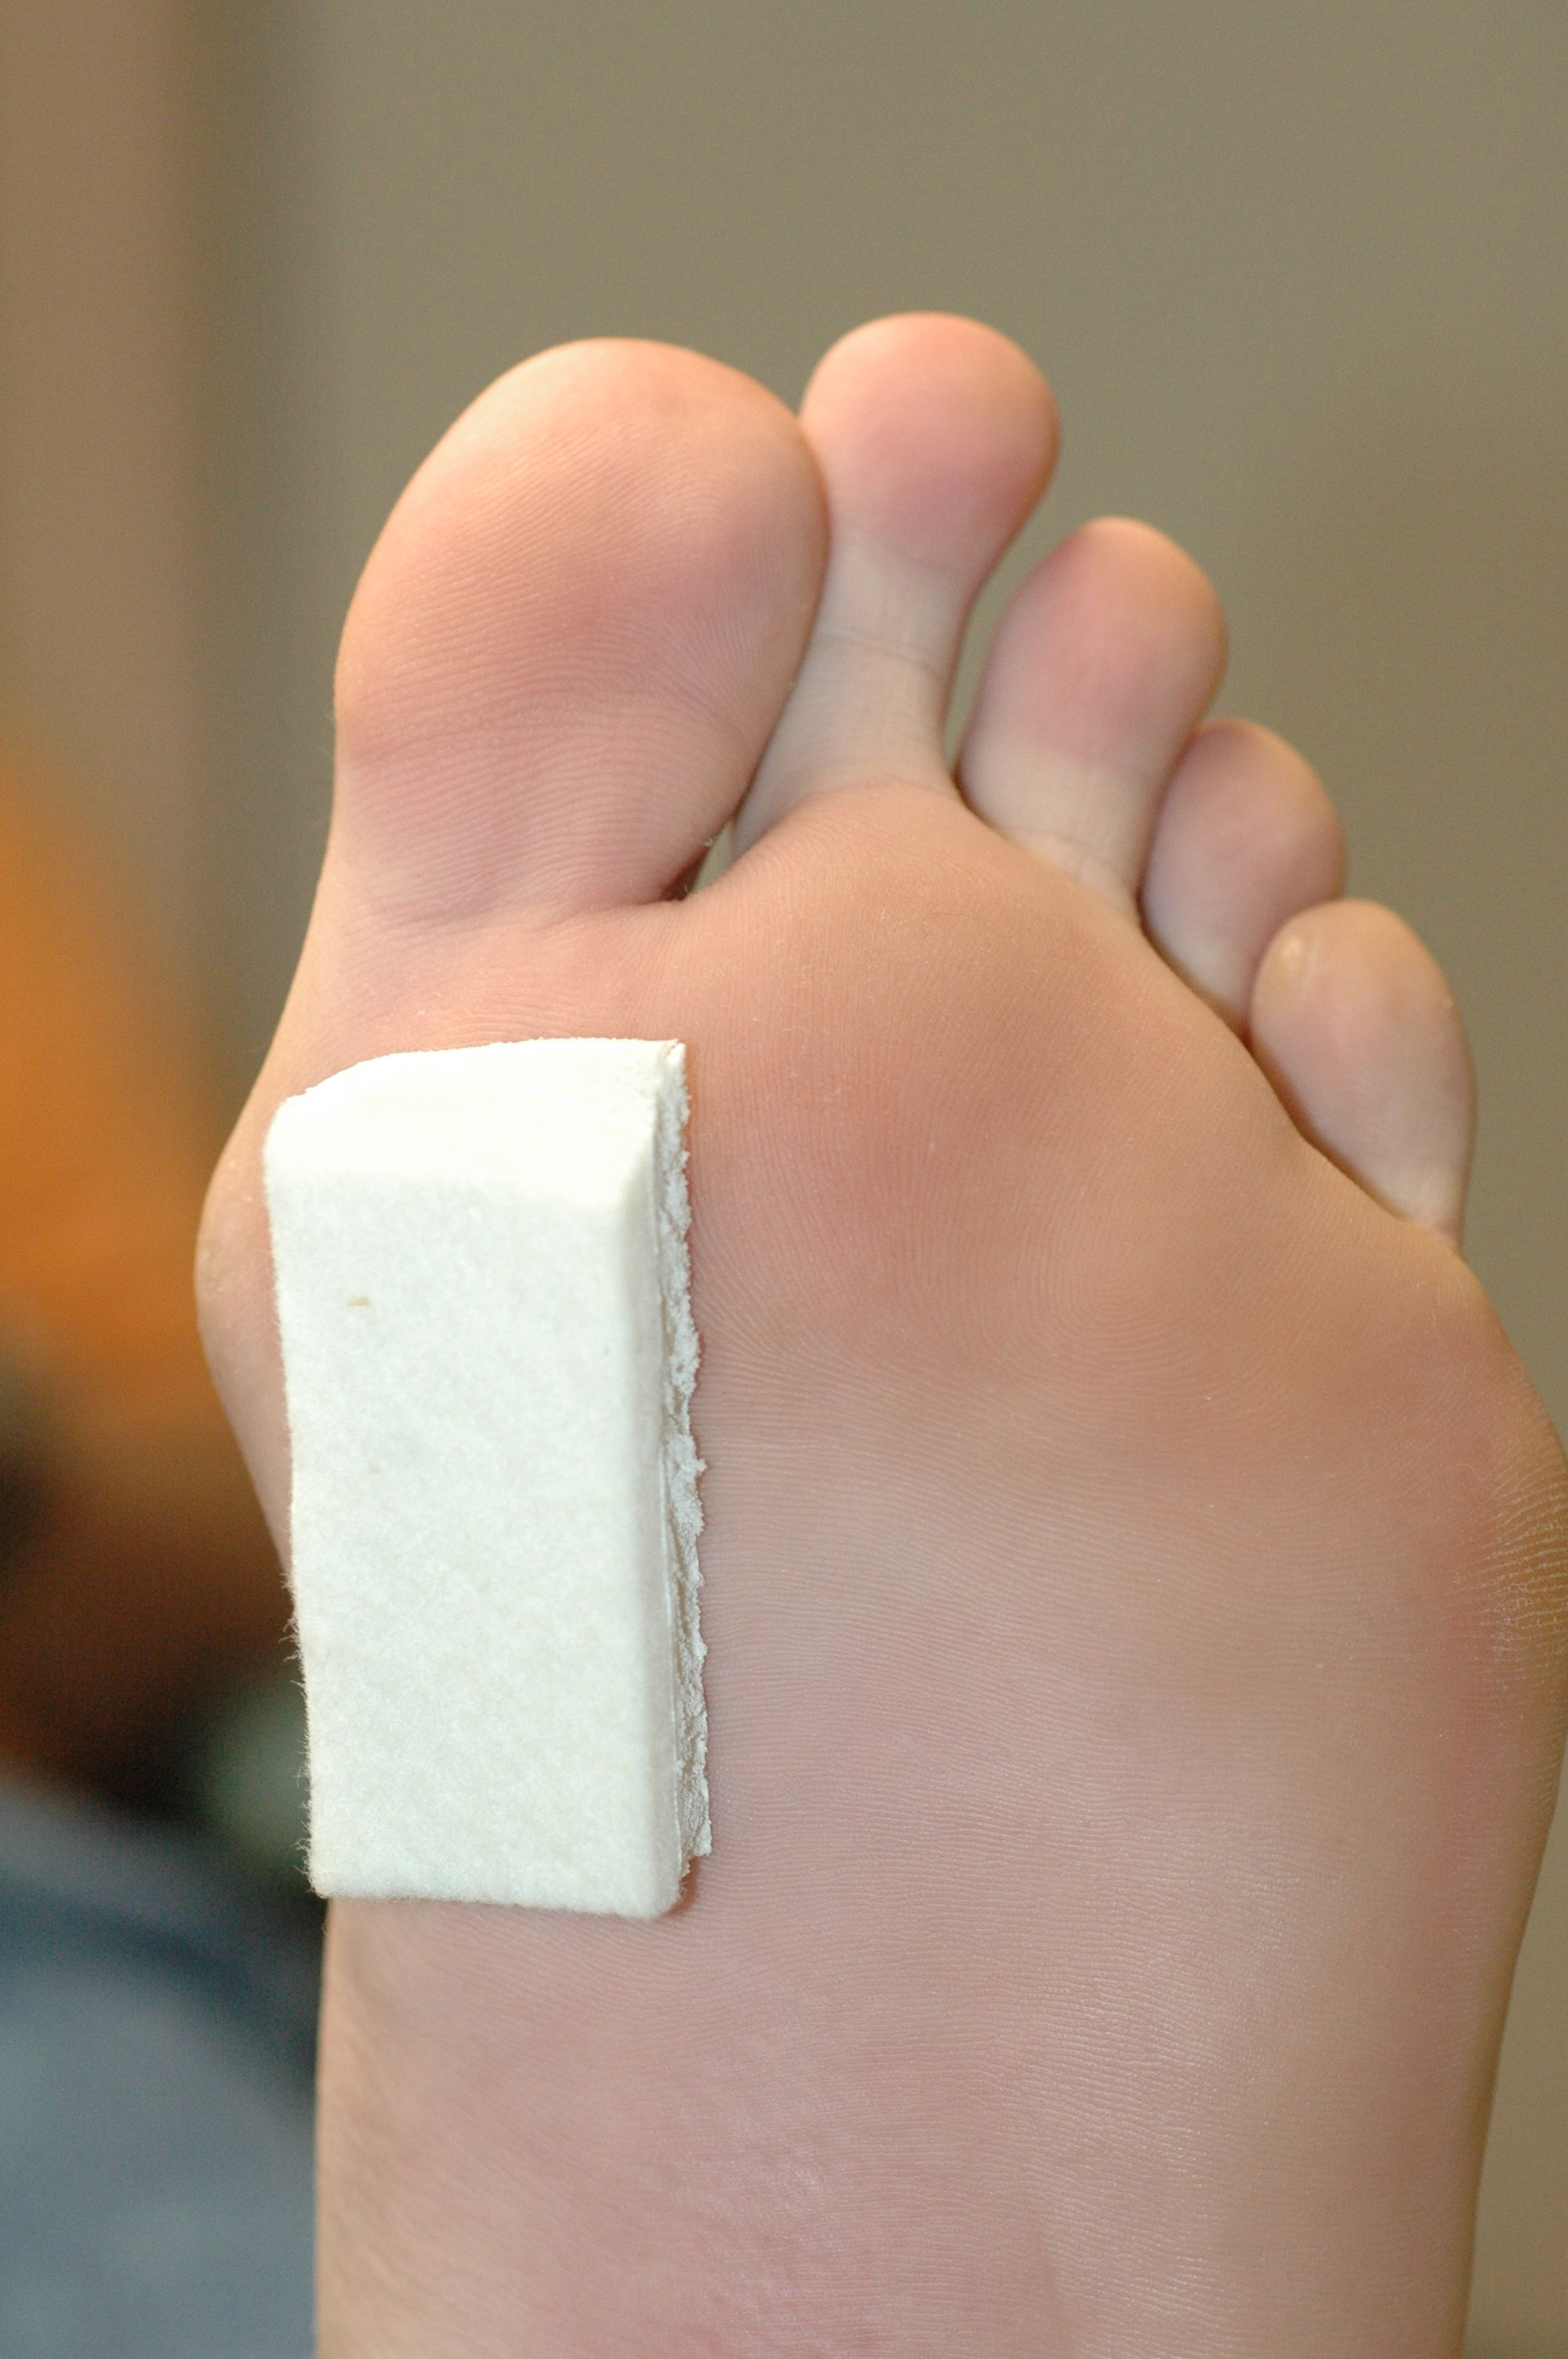 Basic Morton's Toe Pad used for all problems of the body ...